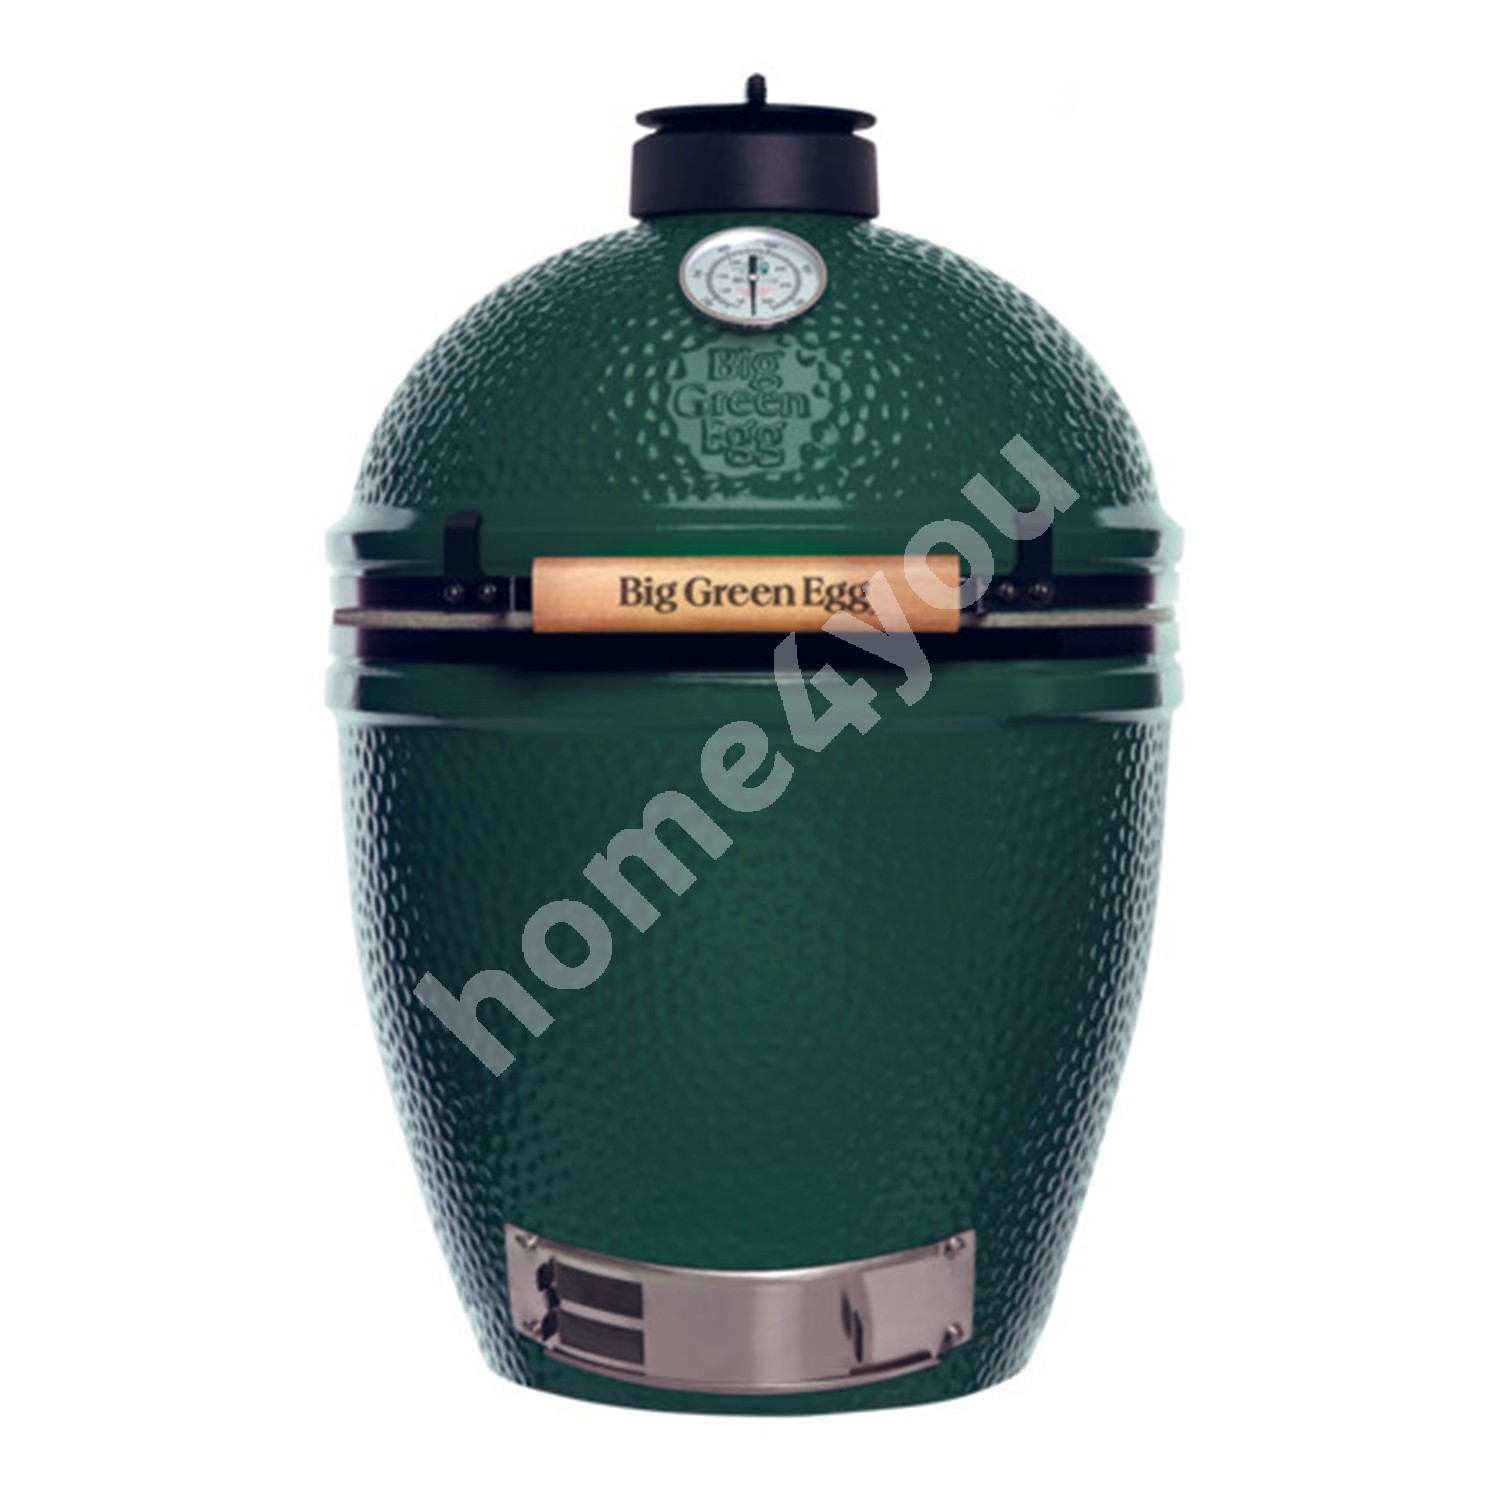 Söegrill Big Green Egg LARGE, resti D46cm, H84cm